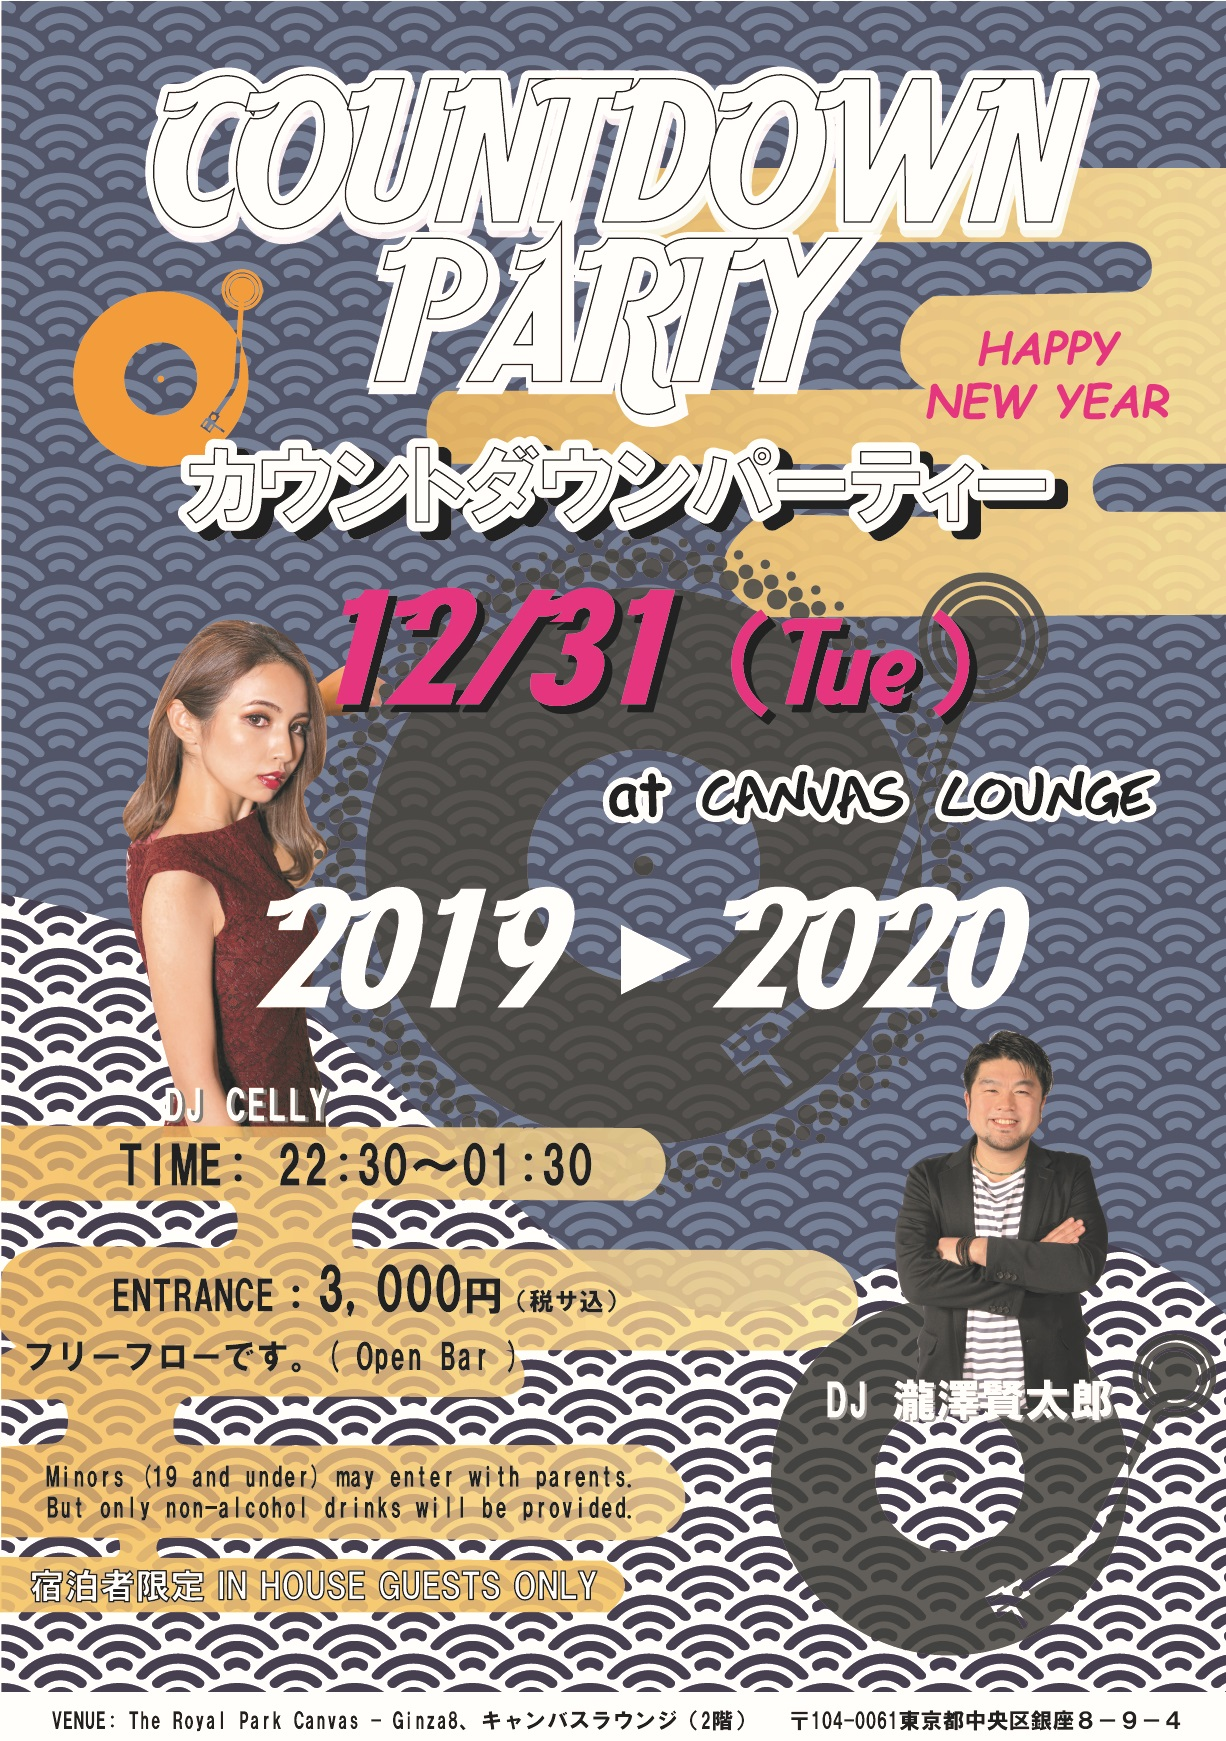 """31st December(Tue)  22:30-01:30 """"Countdown Party""""at The Royal Park Canvas – Ginza 8"""